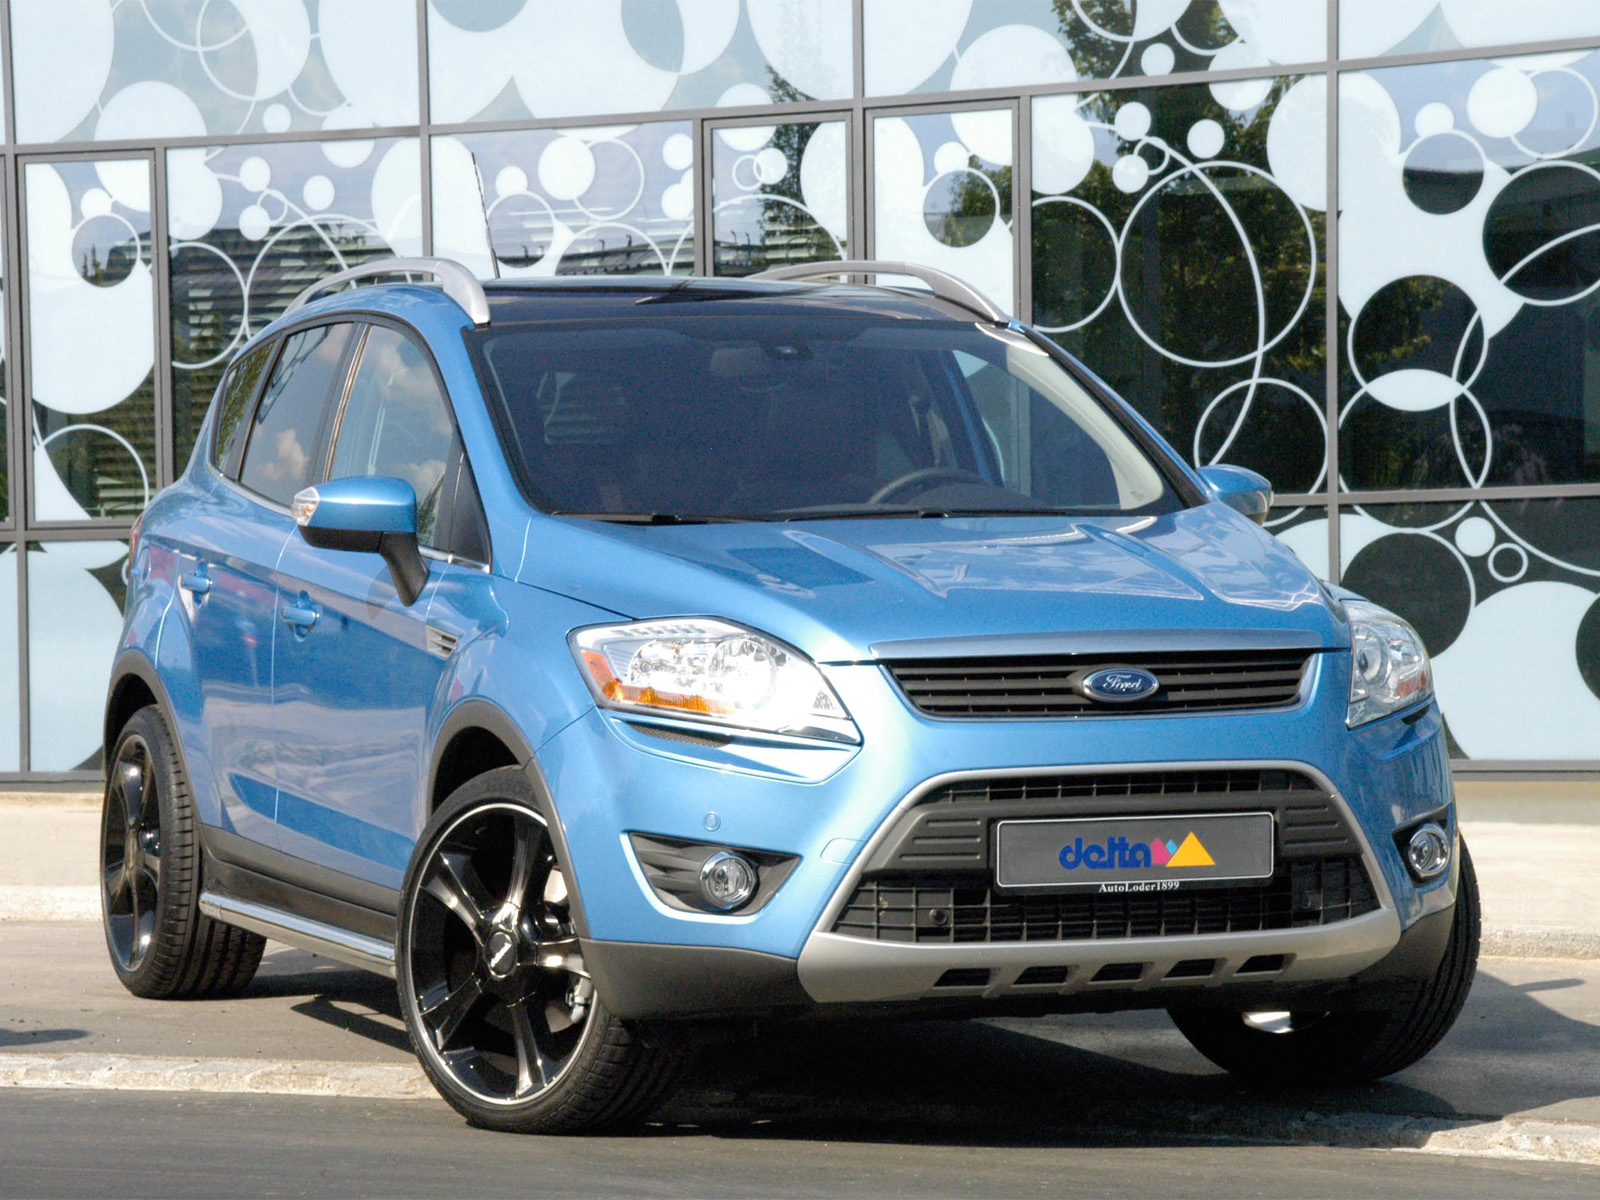 Delta 4x4 Ford Kuga Photos Photogallery With 2 Pics